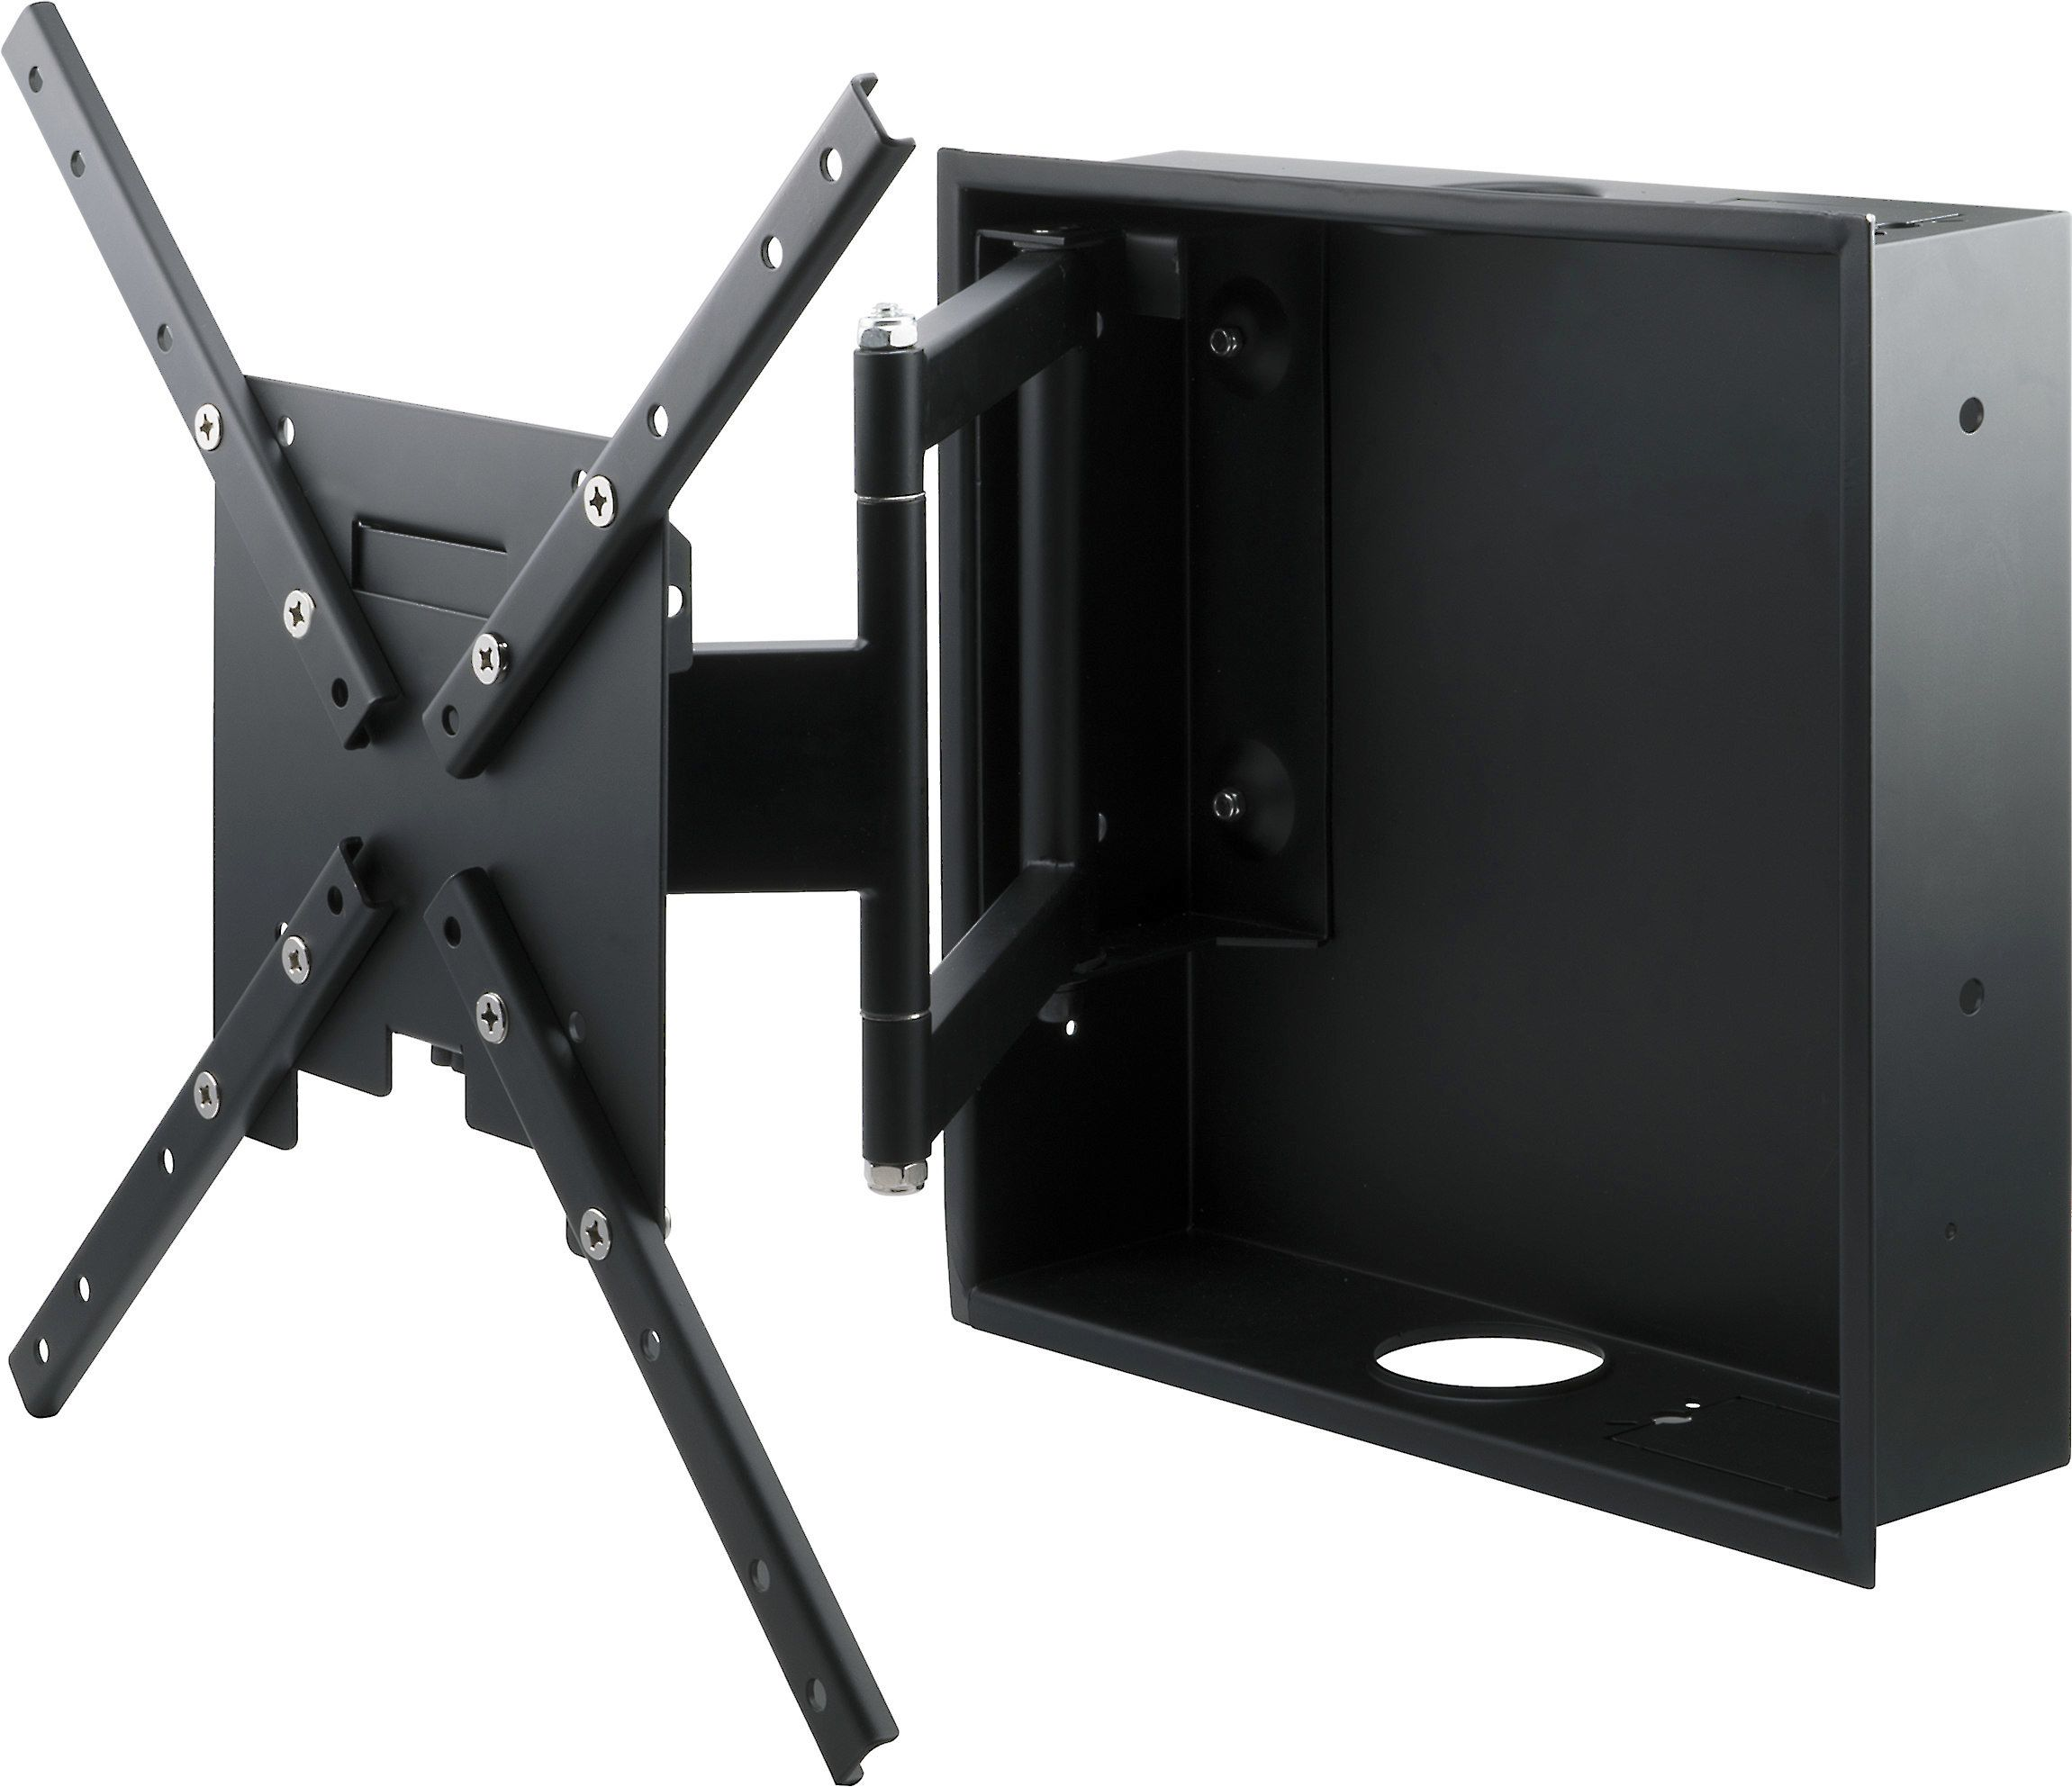 Metra Helios Fm44iw Full Motion Recessed Wall Mount With Articulating Arm For 32 60 Tvs Boss Birthday Gift